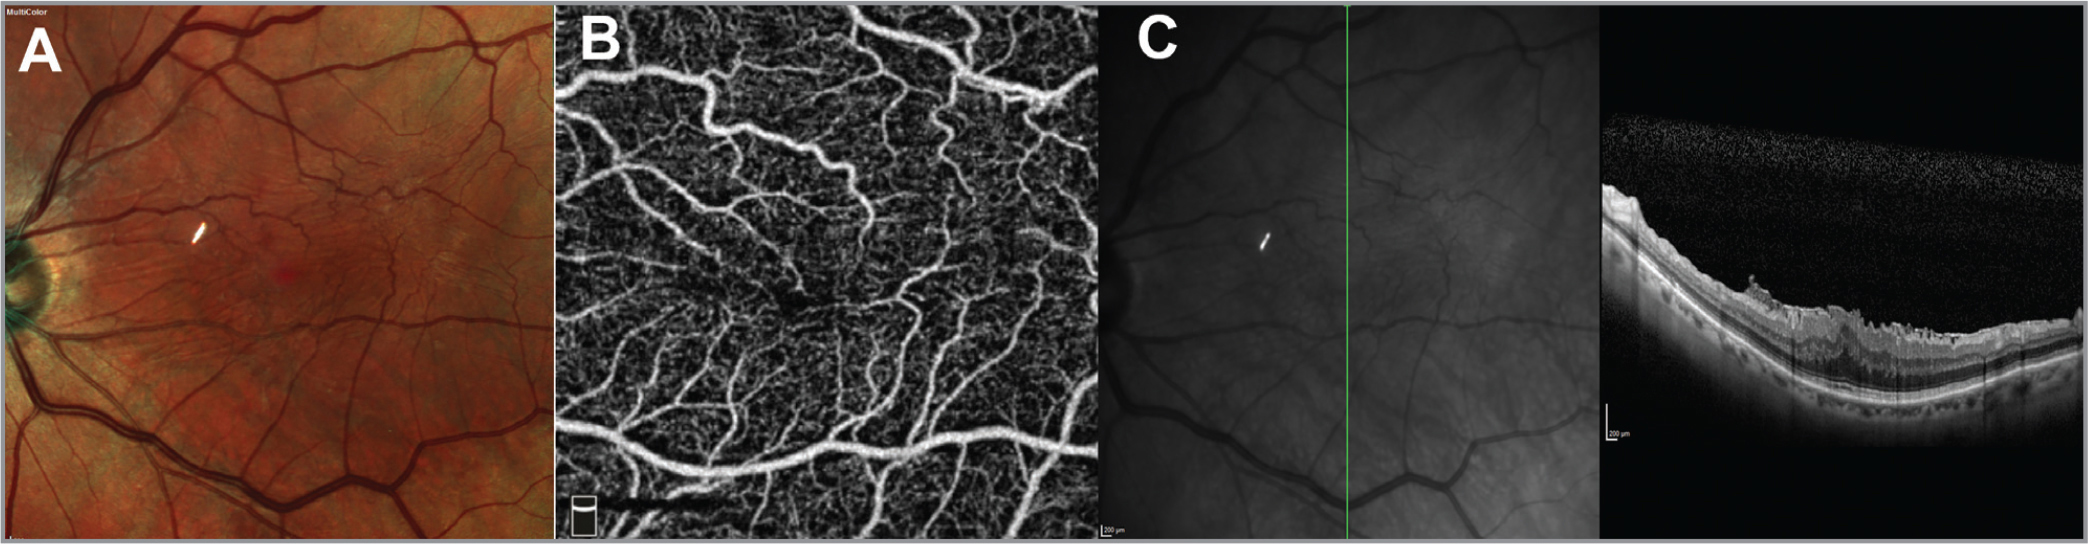 The panel shows the images of a patient who underwent multimodal imaging for an epiretinal membrane. The patient has some retinal stria over the macula on the multicolor image (A) with a small foveal avascular zone on the superficial slab of the optical coherence tomography angiography (OCTA) image (B). The vertical spectral-domain OCT scan reveals thickening of inner retinal layers with elevated, corrugated foveal contour (C).